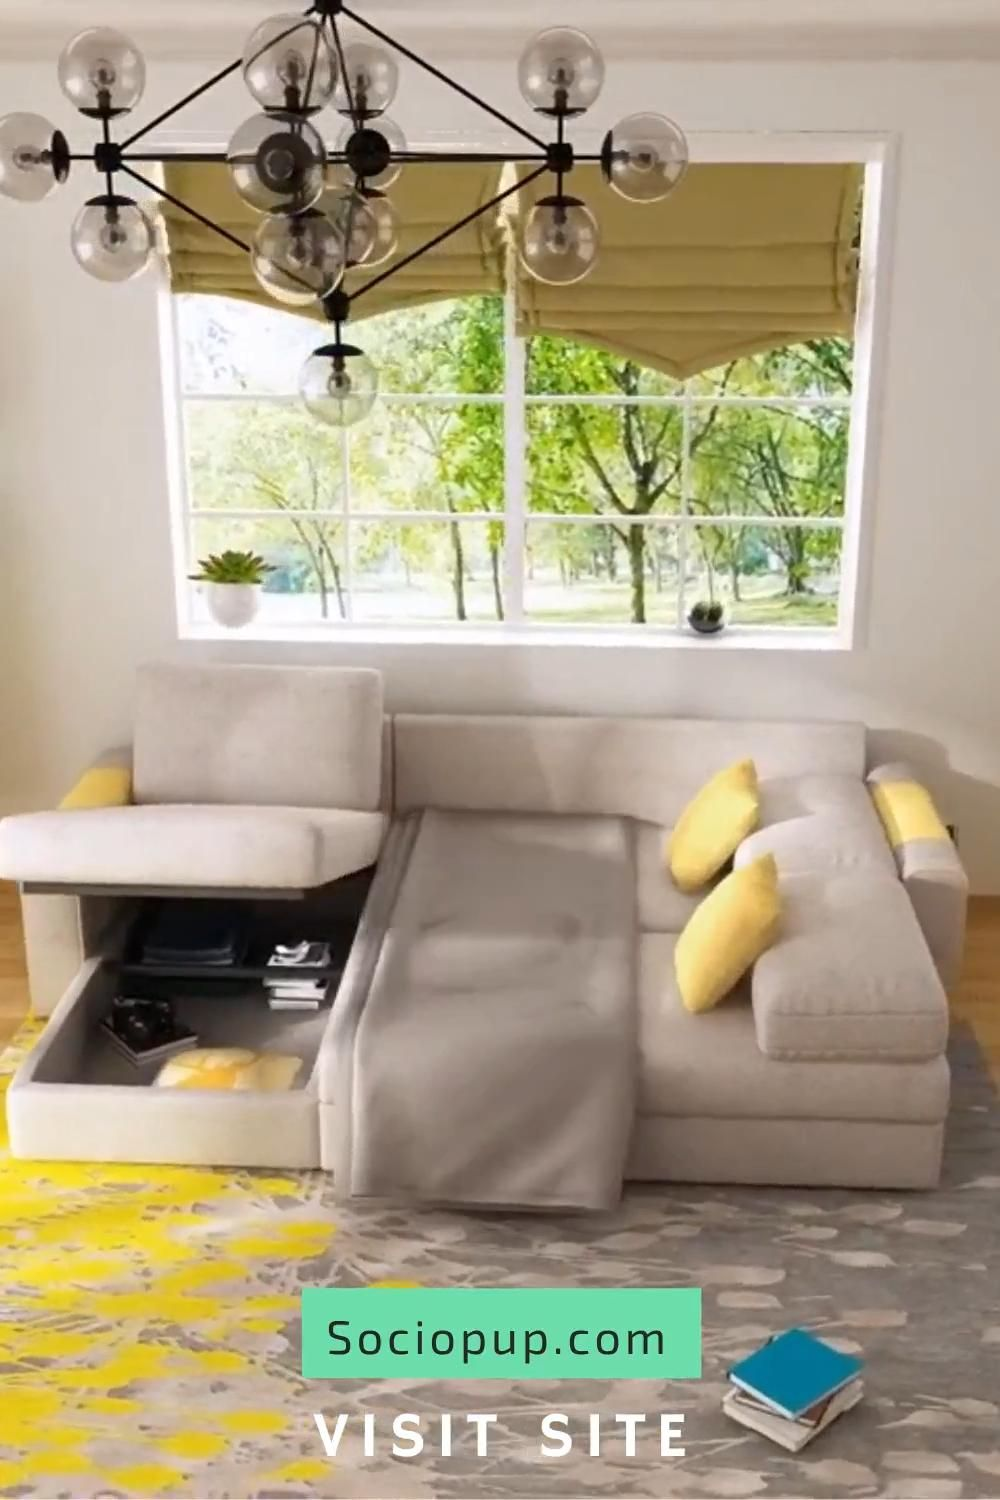 TOP 10 PRACTICAL TIPS TO SUCCESSFULLY DECORATE YOU